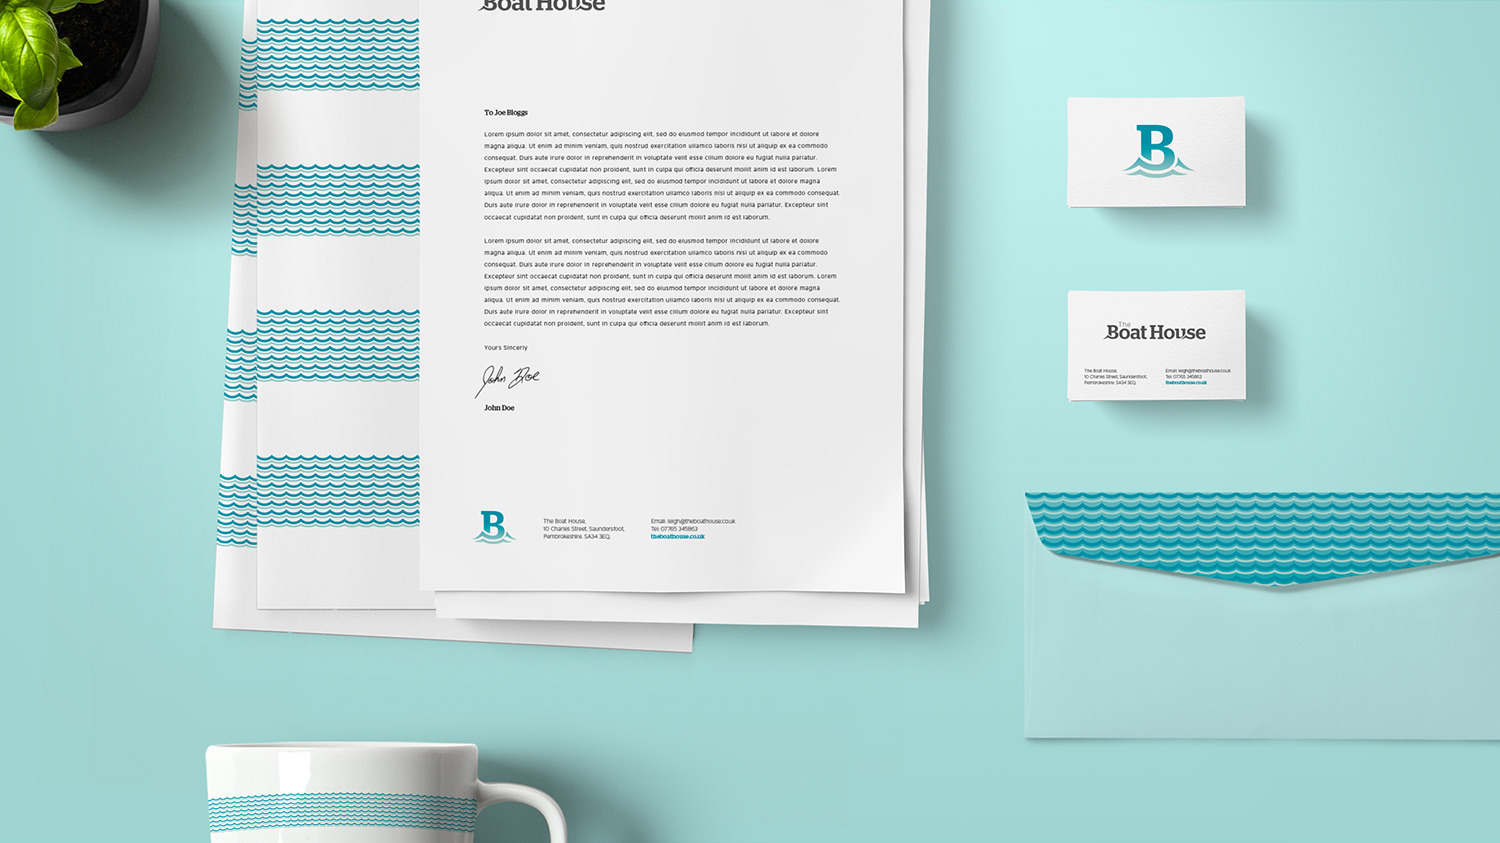 Letterhead, envelope design and business cards